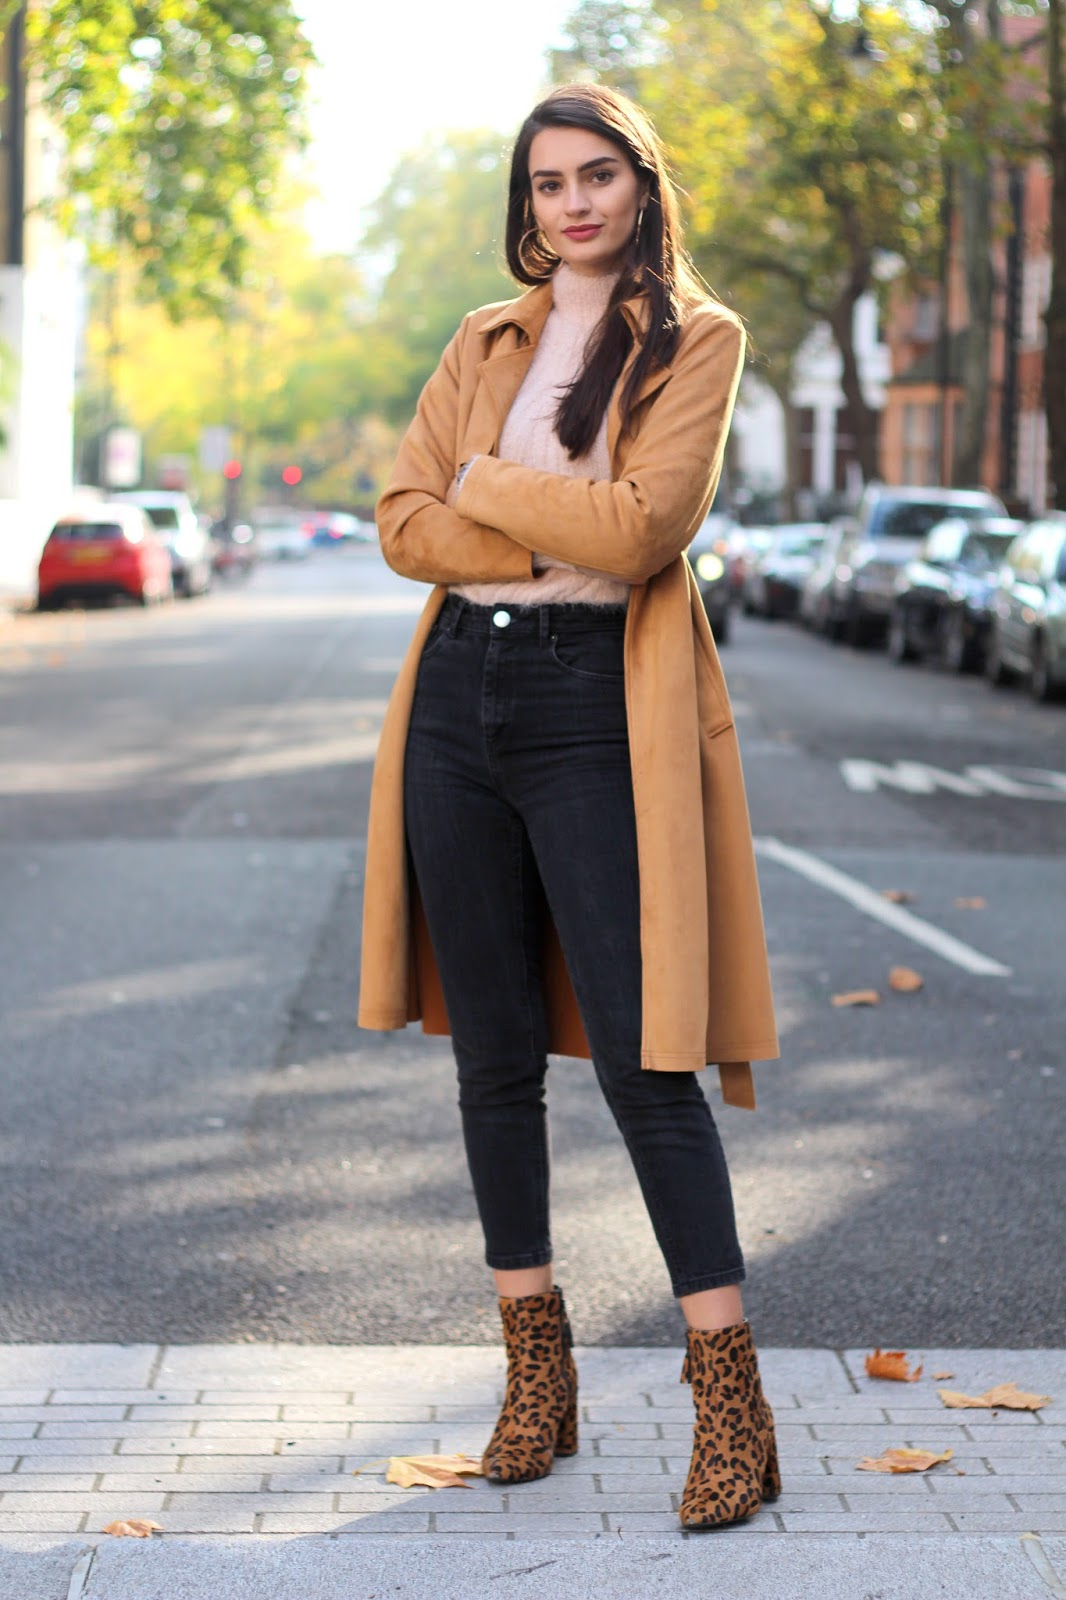 peexo autumn fashion blogger personal style